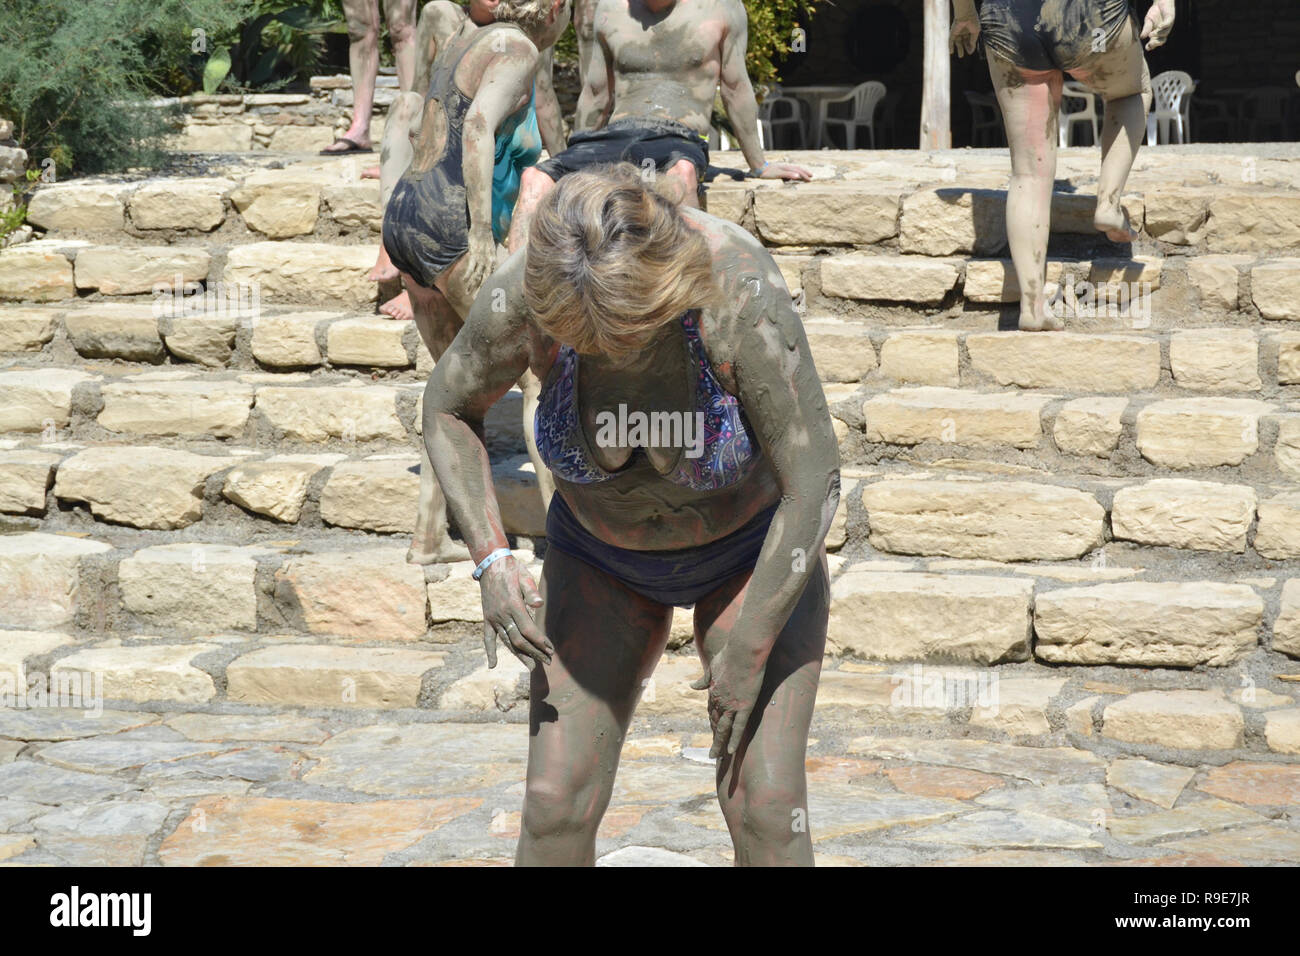 Woman tourist smeared in mud at Turkish mud bath - Stock Image